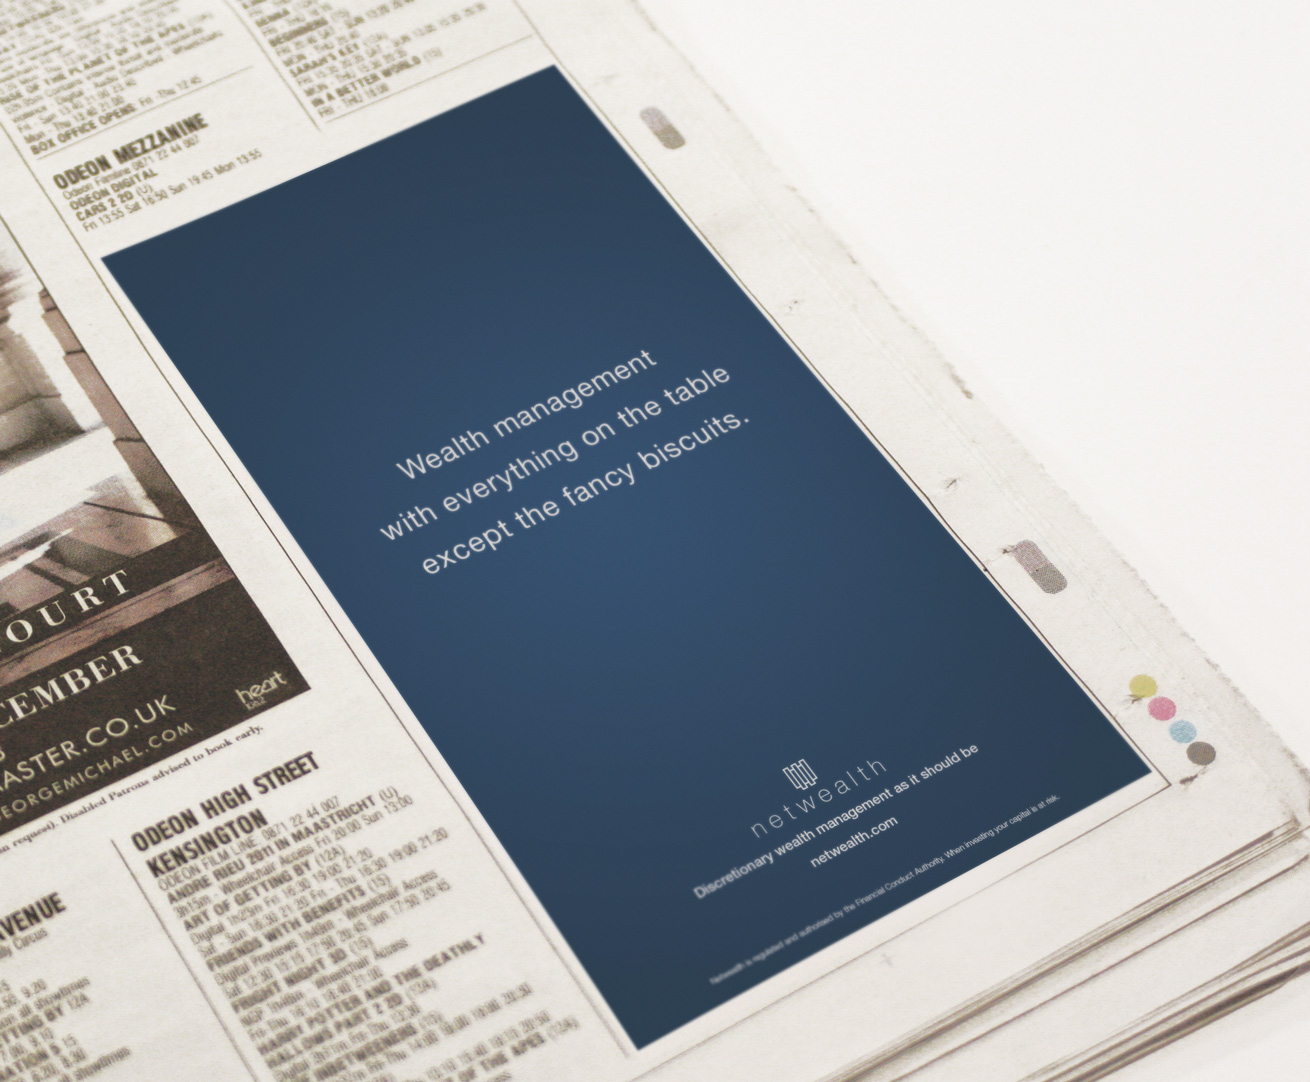 NETWEALTH_newspaper_advert_2.jpg